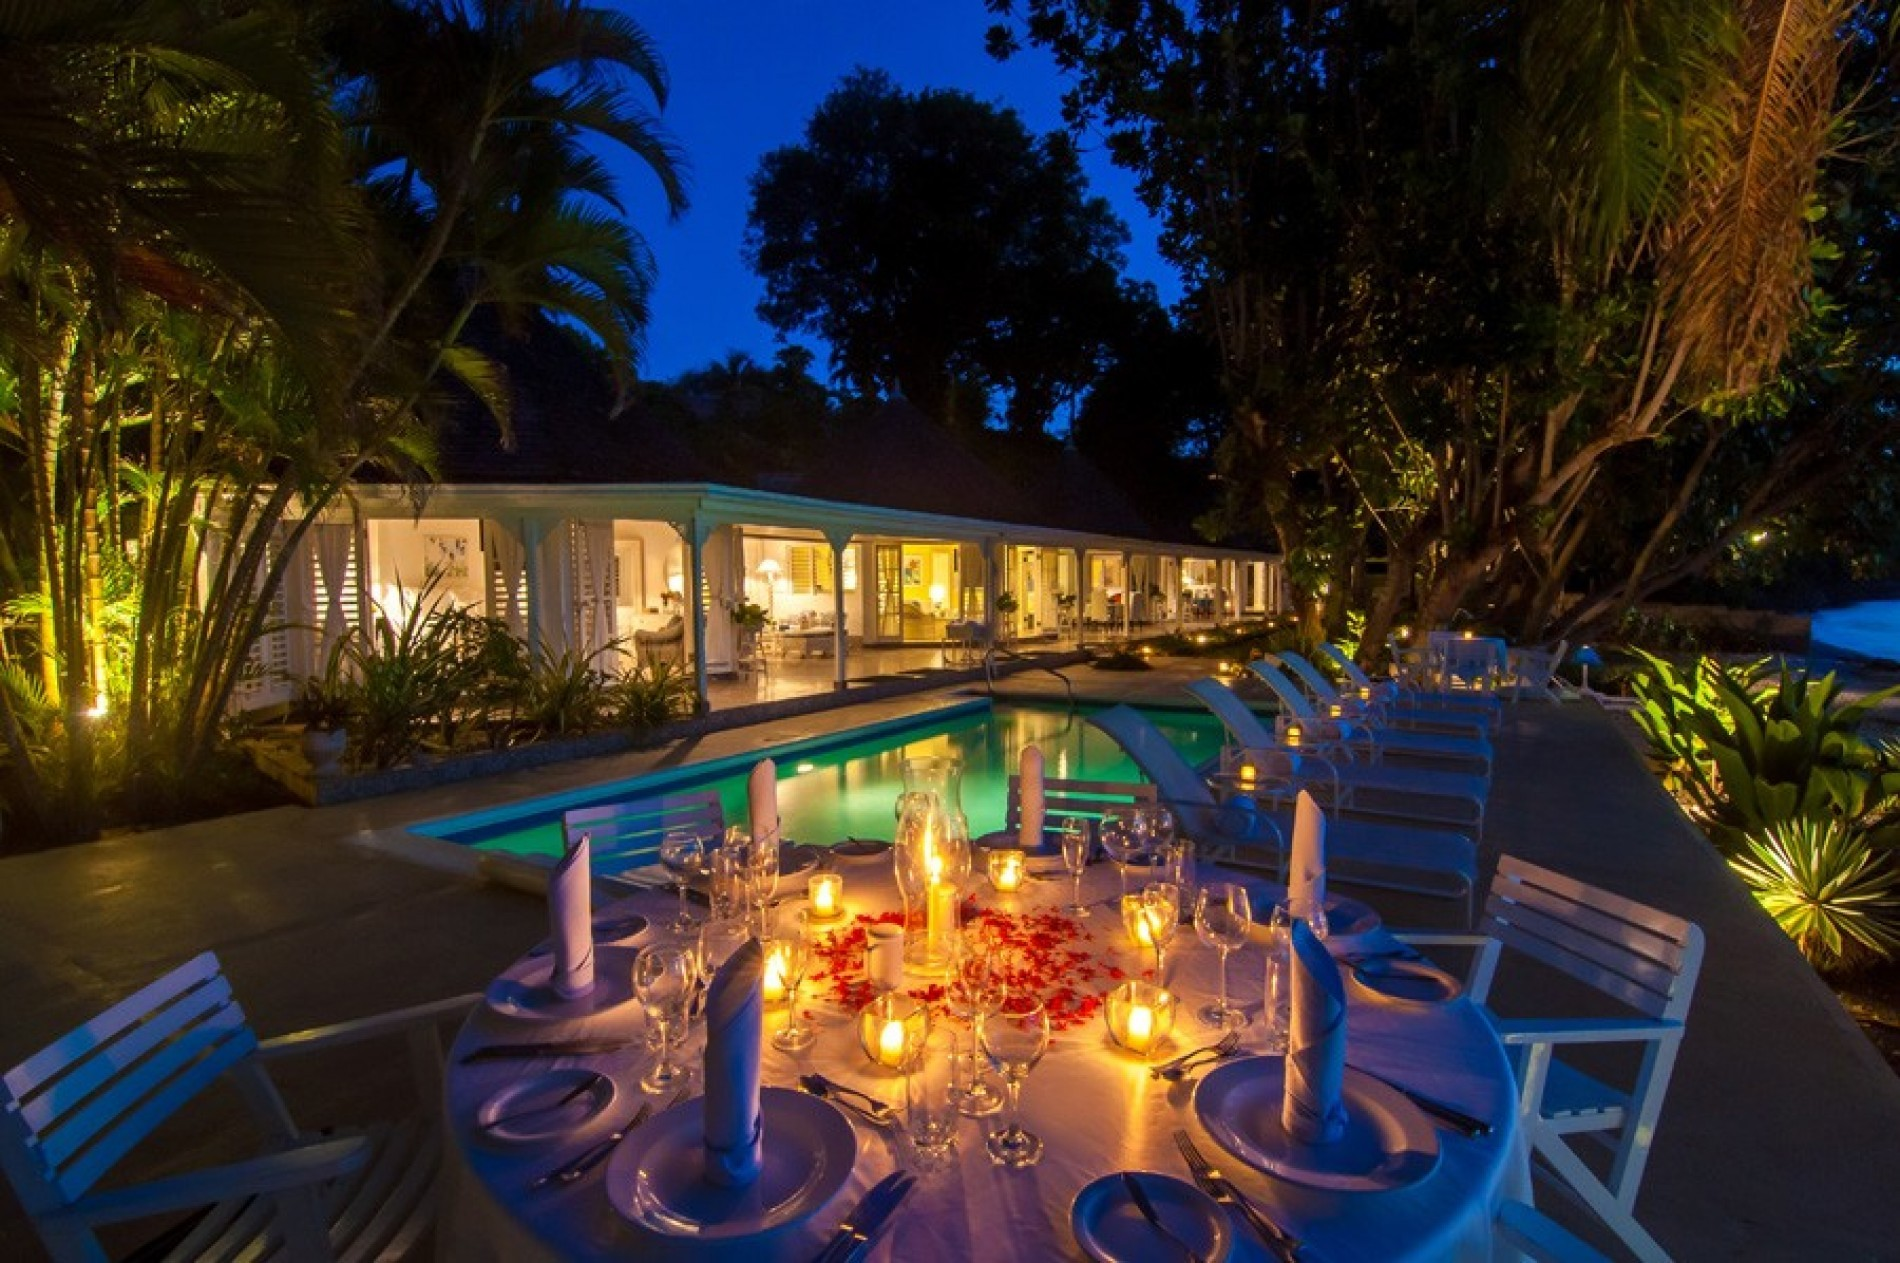 The pool area glows seductively in the Jamaican night. A prettily set dinner table scattered with rose petals and candles warms the images foreground.